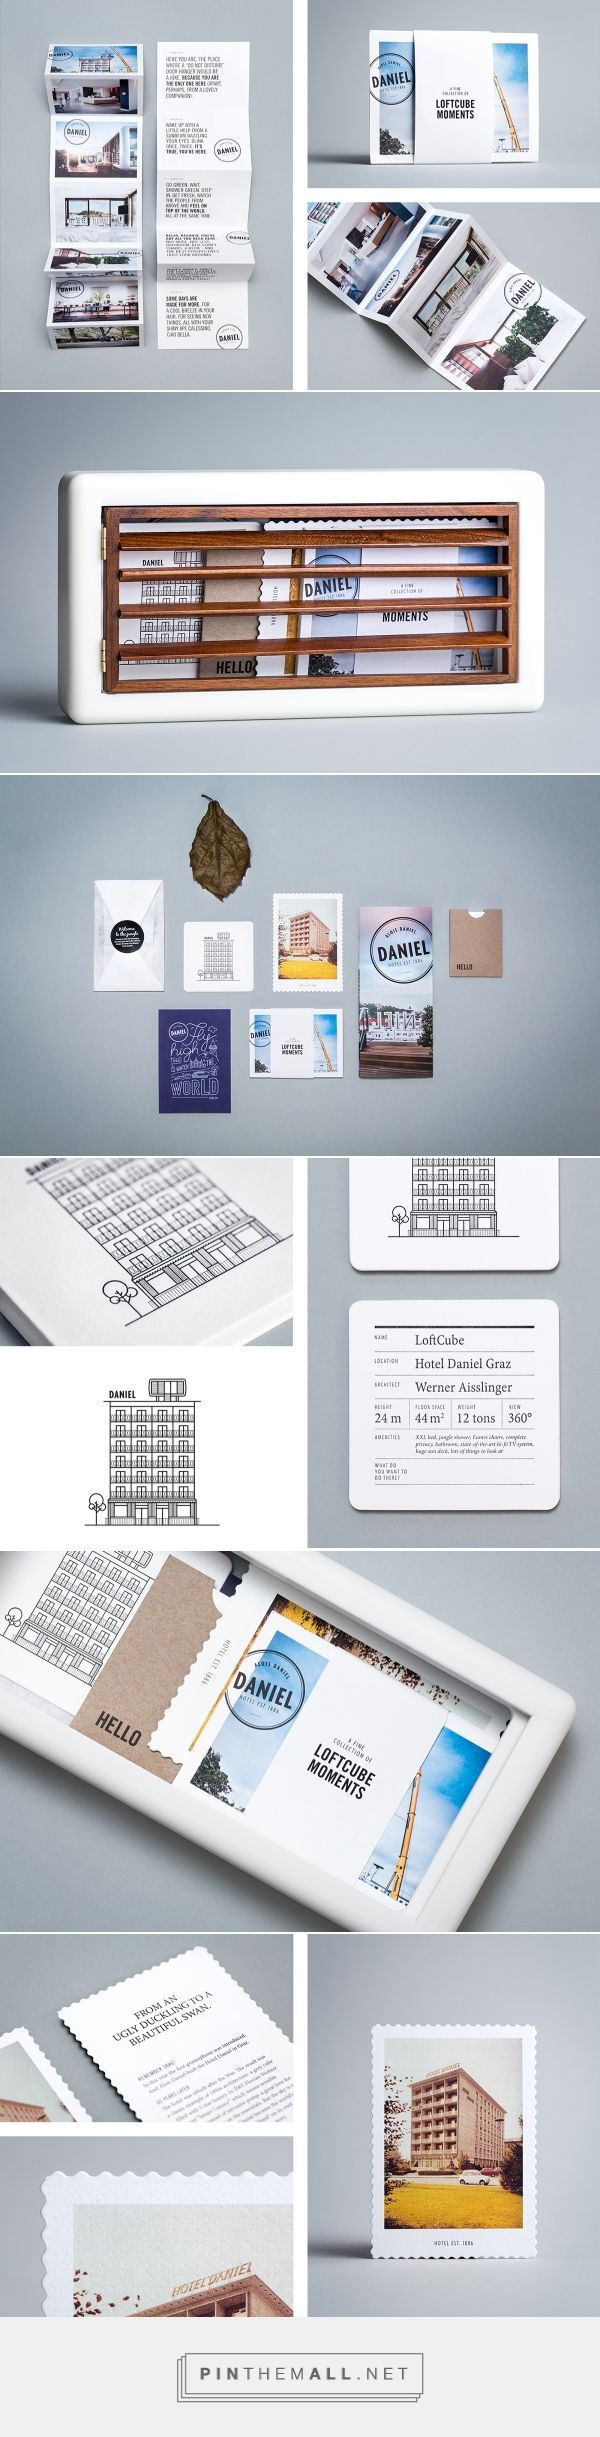 Daniel LoftCube Mailing - Branding on Behance - created via http://pinthemall.net